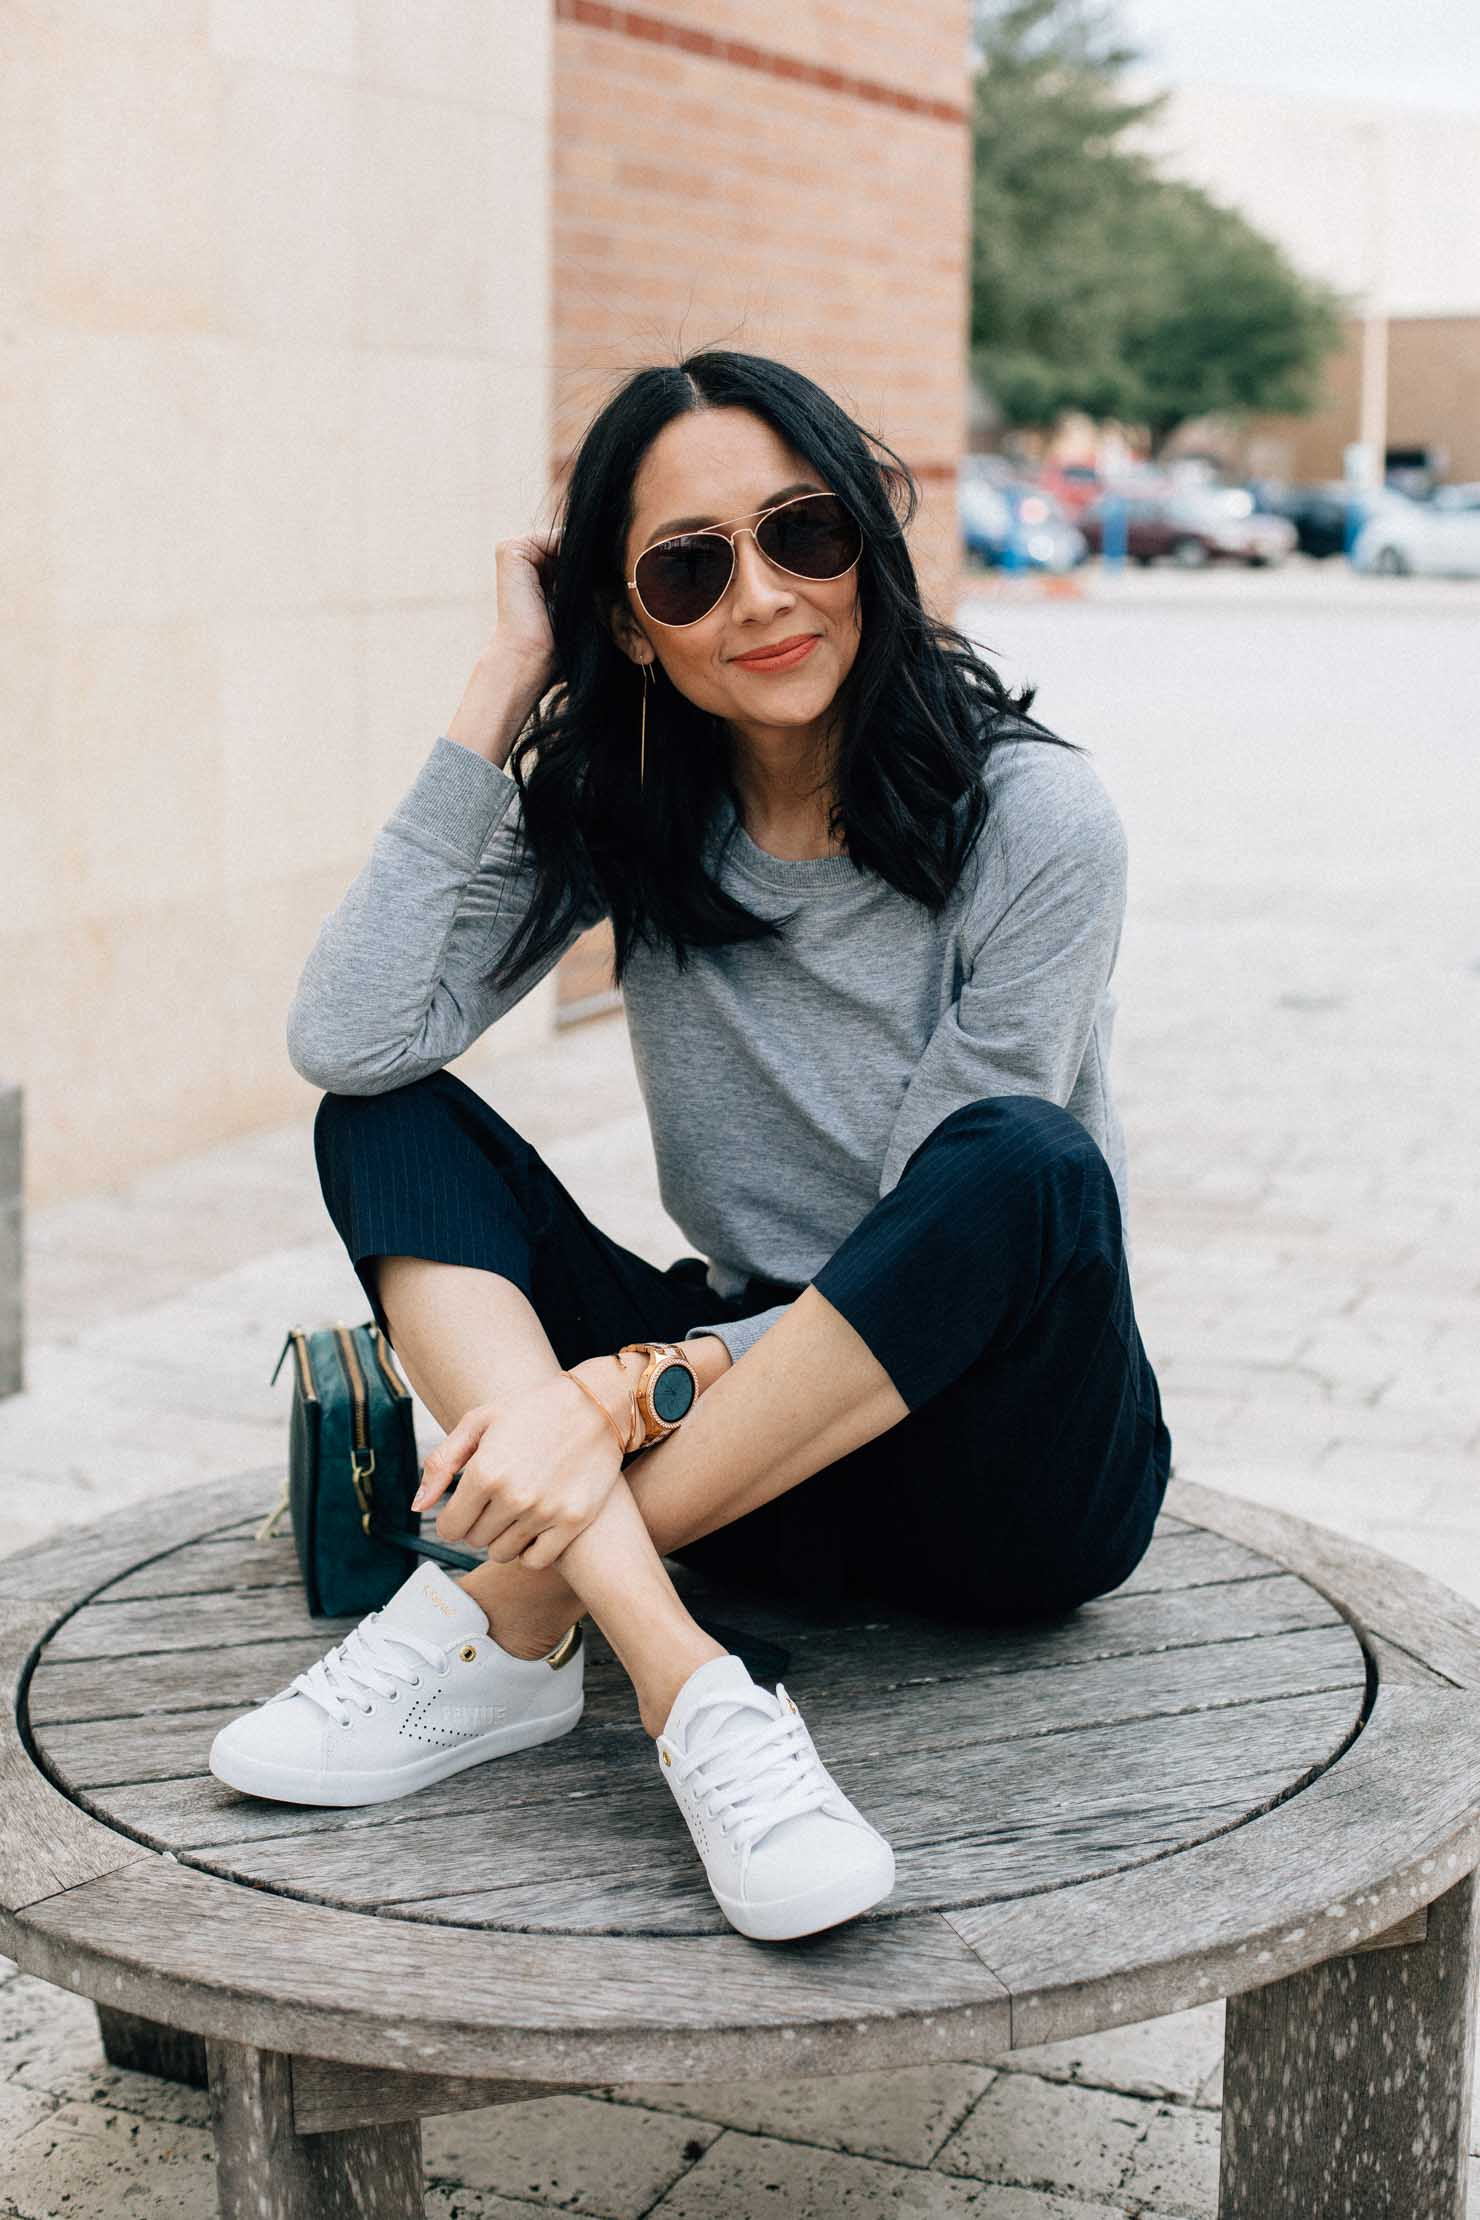 fashion blogger Lilly Beltran wears navy slacks with a grey sweatshirt and white sneakers for an effortless look